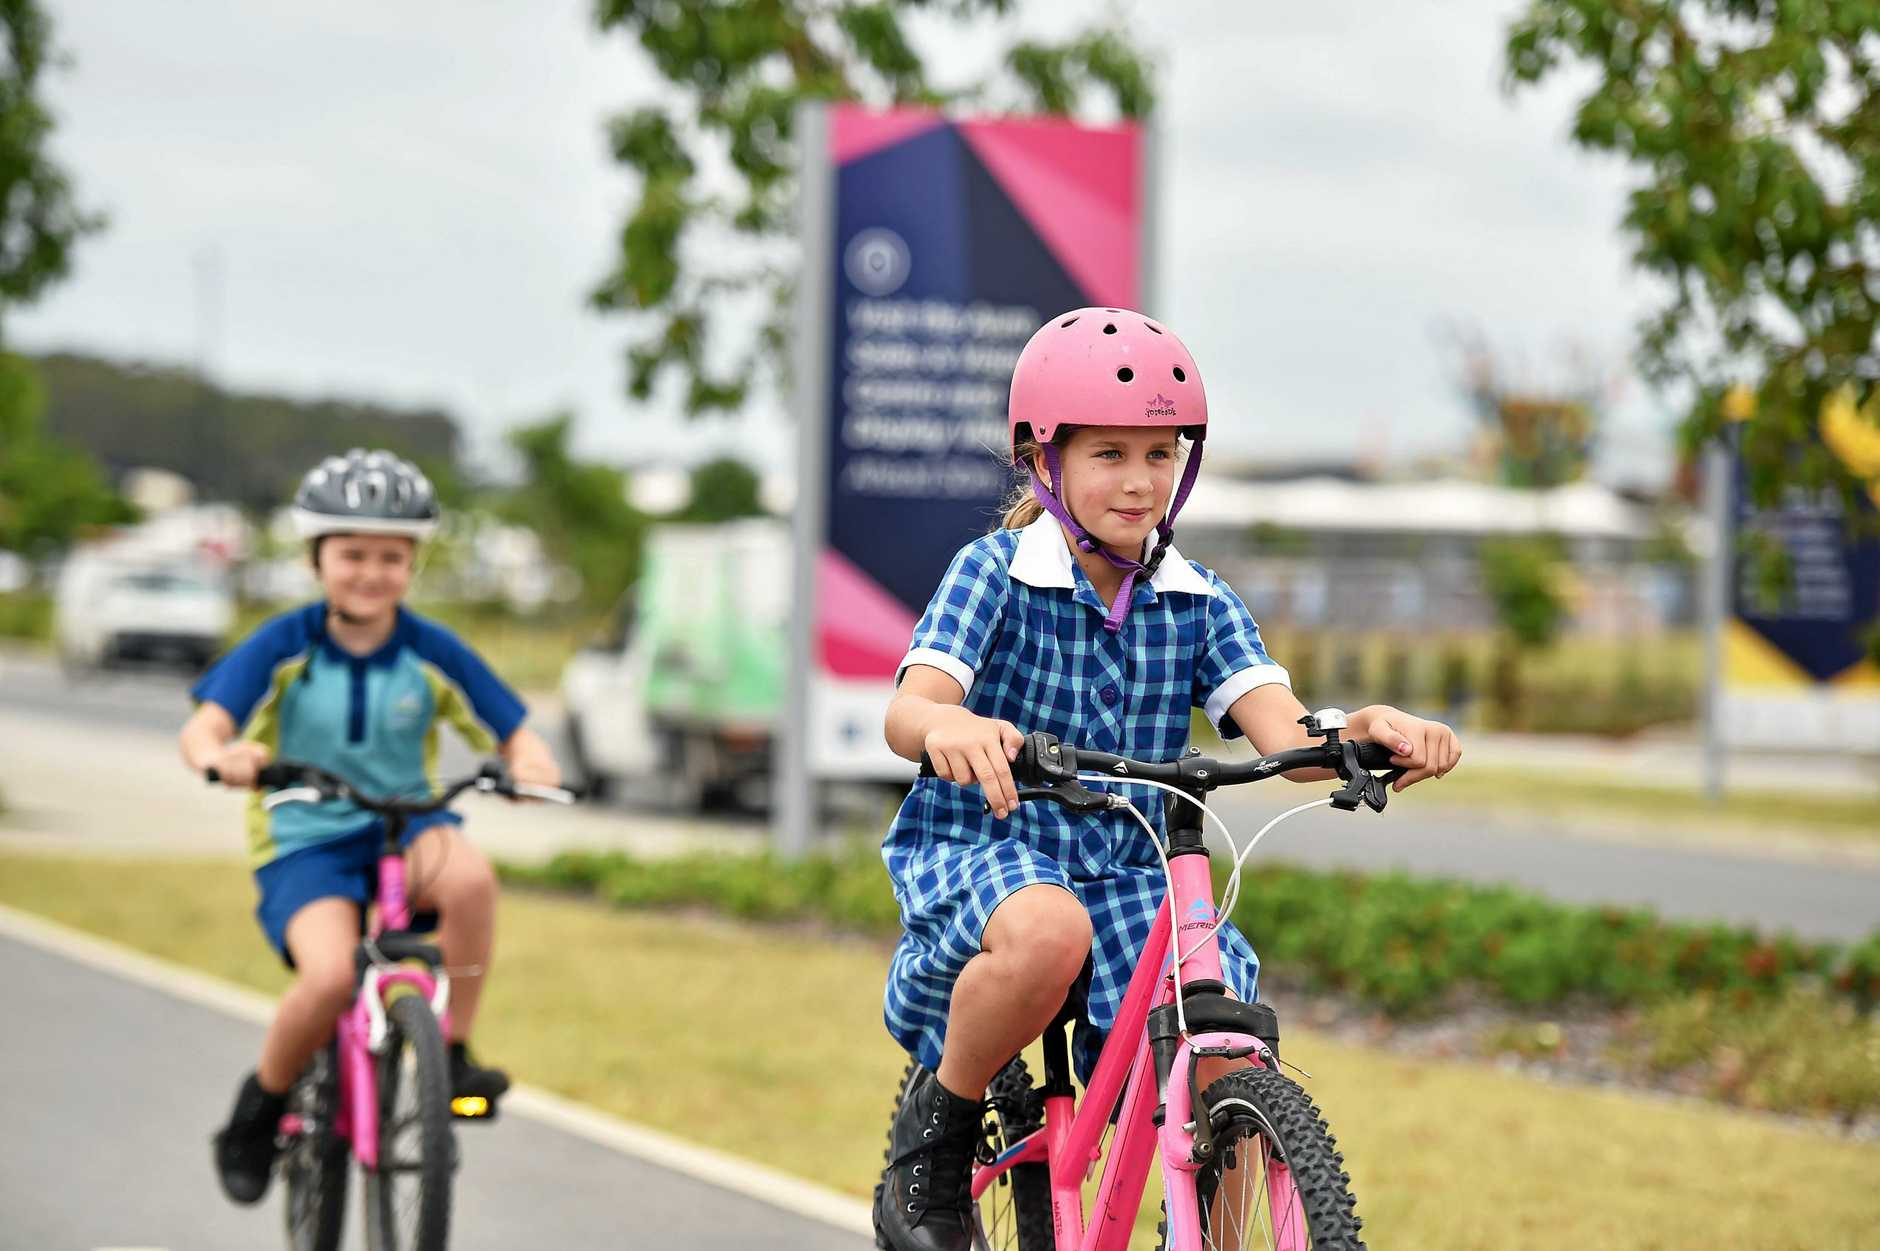 Stockland has partnered with the Australian Cycling Association to launch Auras cycling city, an initiative to get more people on their bikes. Jasmin Askew, 9, and Sophie Jelicich, 8, say they love using Auras cycle pathways to ride to school and visit the local parks with friends.